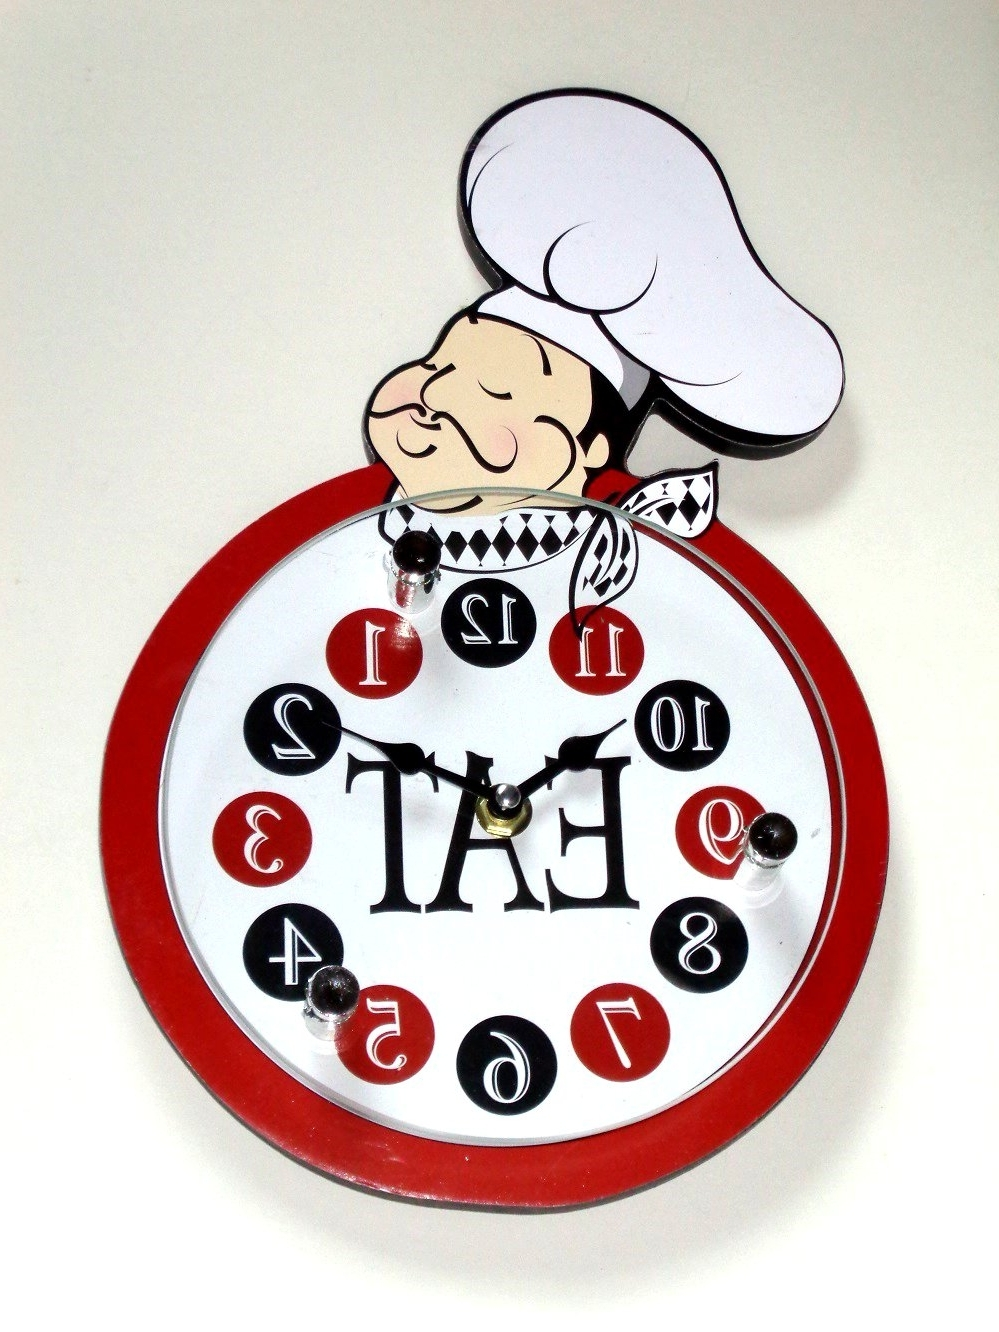 Italian Chef Wall Art With Preferred Fat Italian Chef Kitchen Wall Clock $19.95 (Gallery 8 of 15)